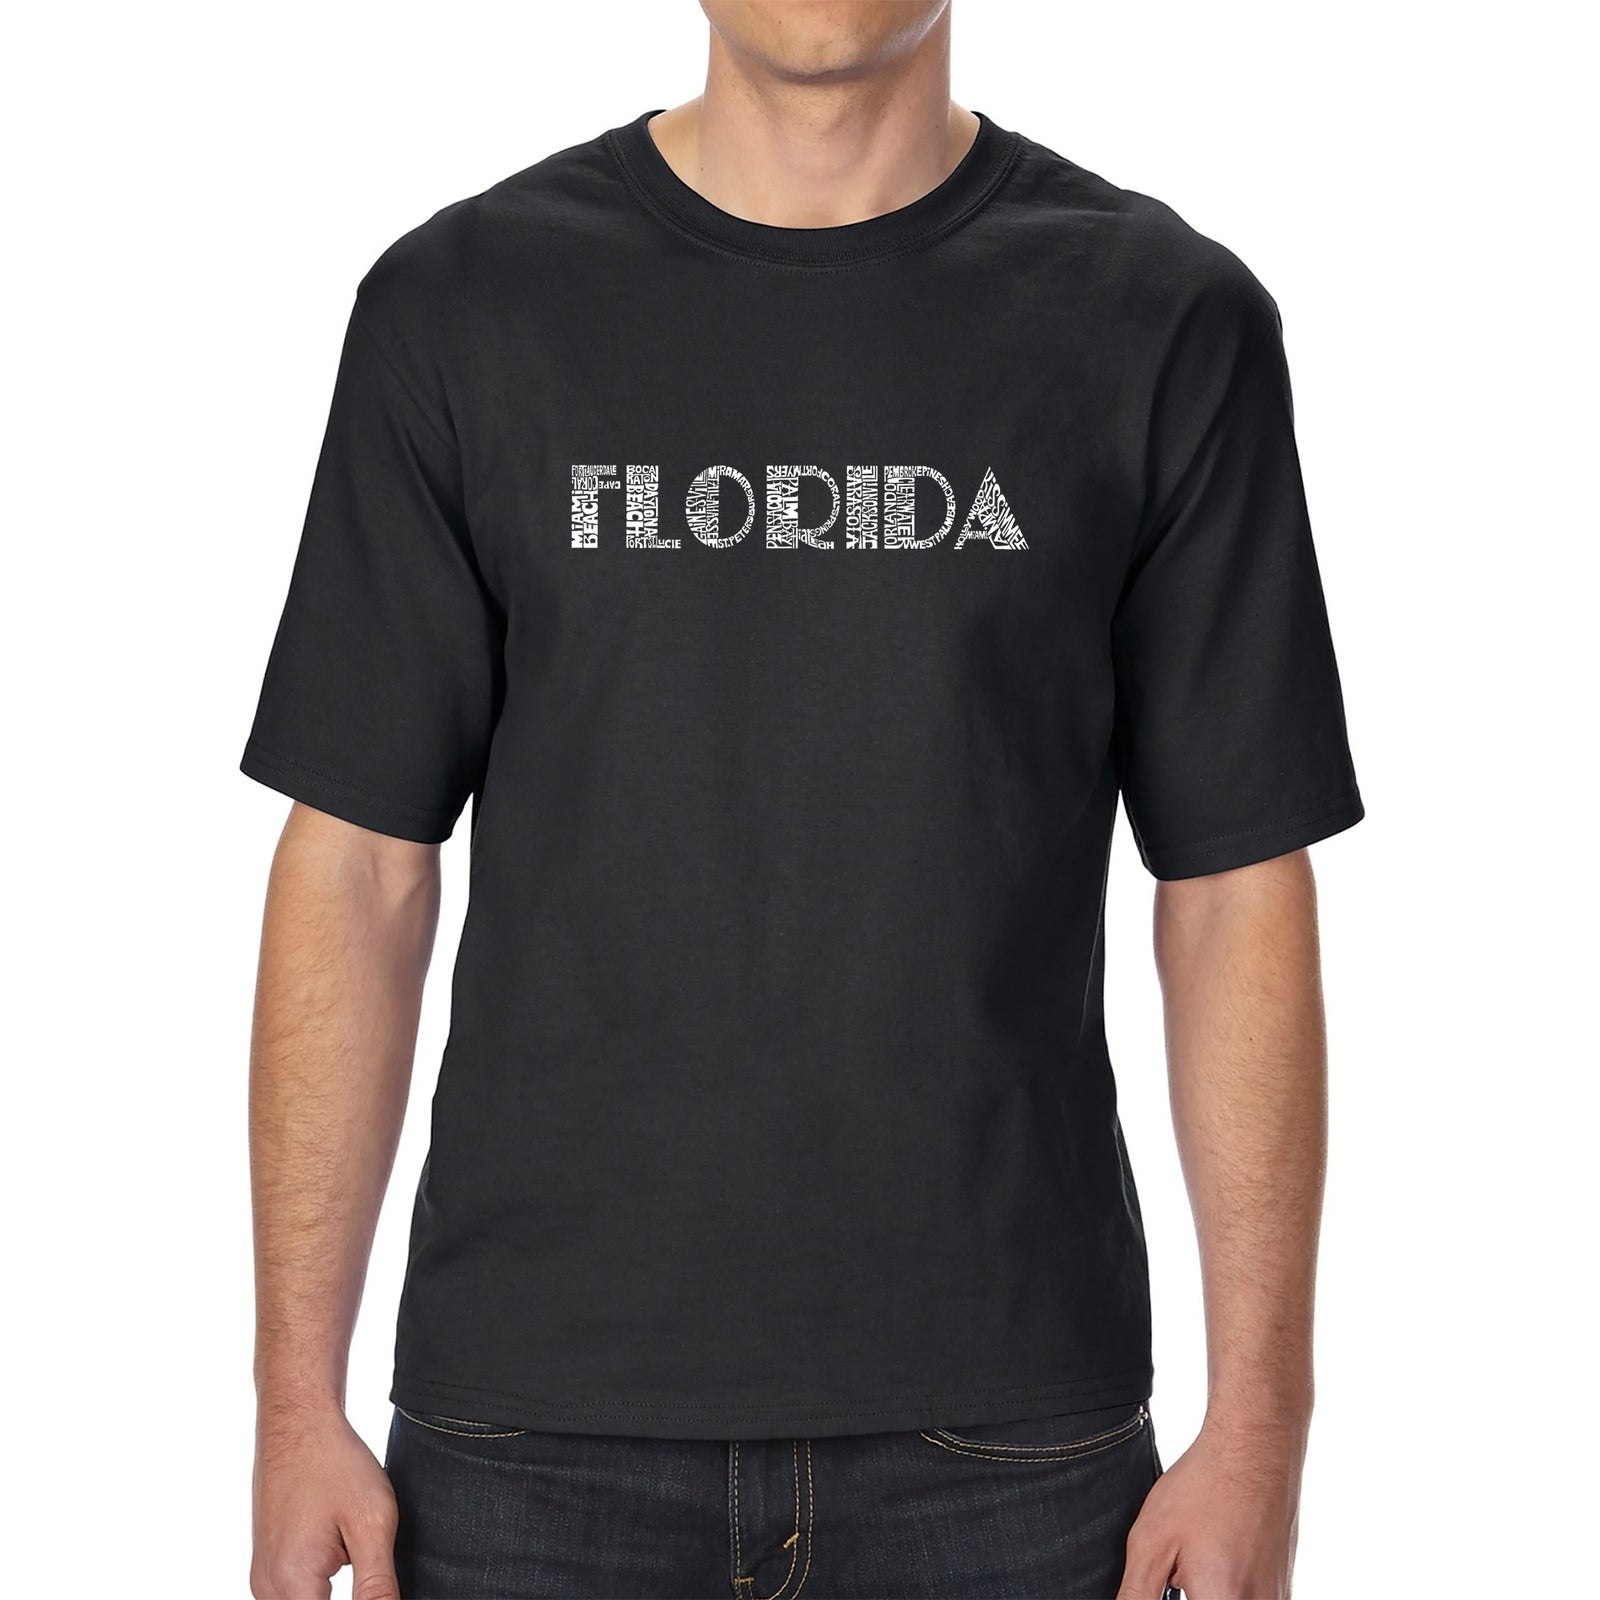 Men's Tall and Long Word Art T-shirt - POPULAR CITIES IN FLORIDA